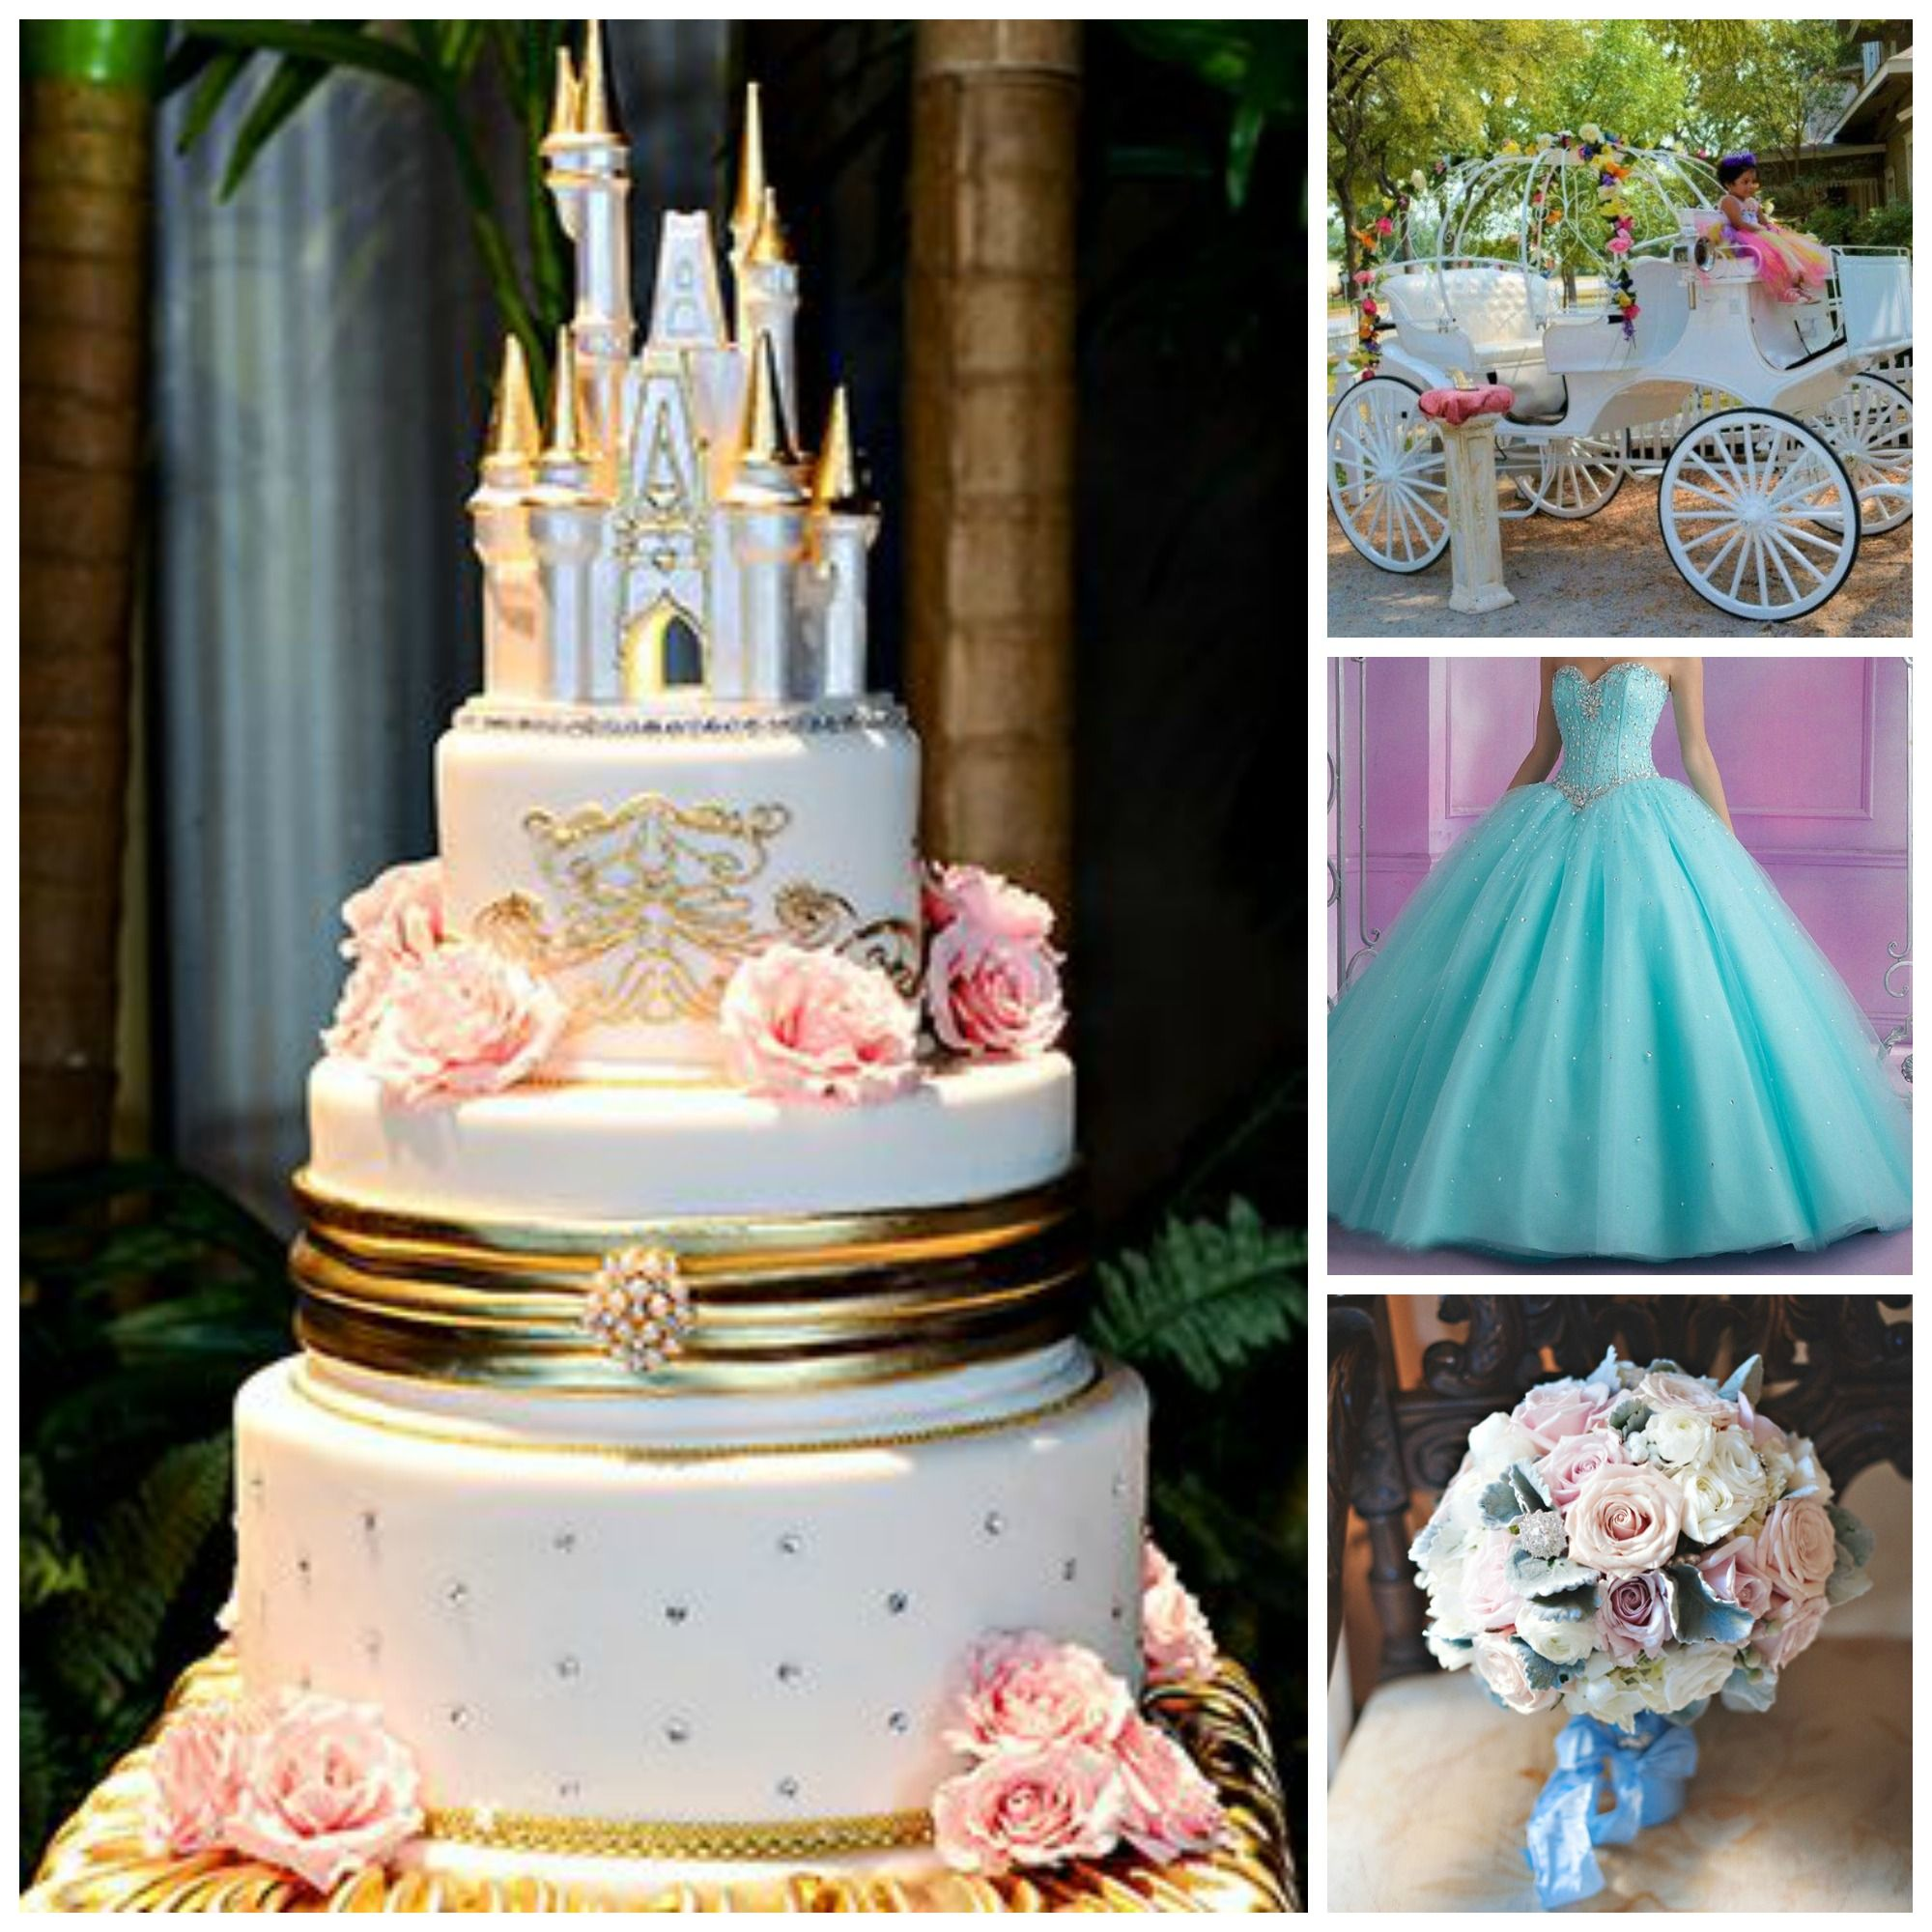 Cake Decorating Ideas For Quinceanera : Quince Theme Decorations Quinceanera ideas and Quinceanera